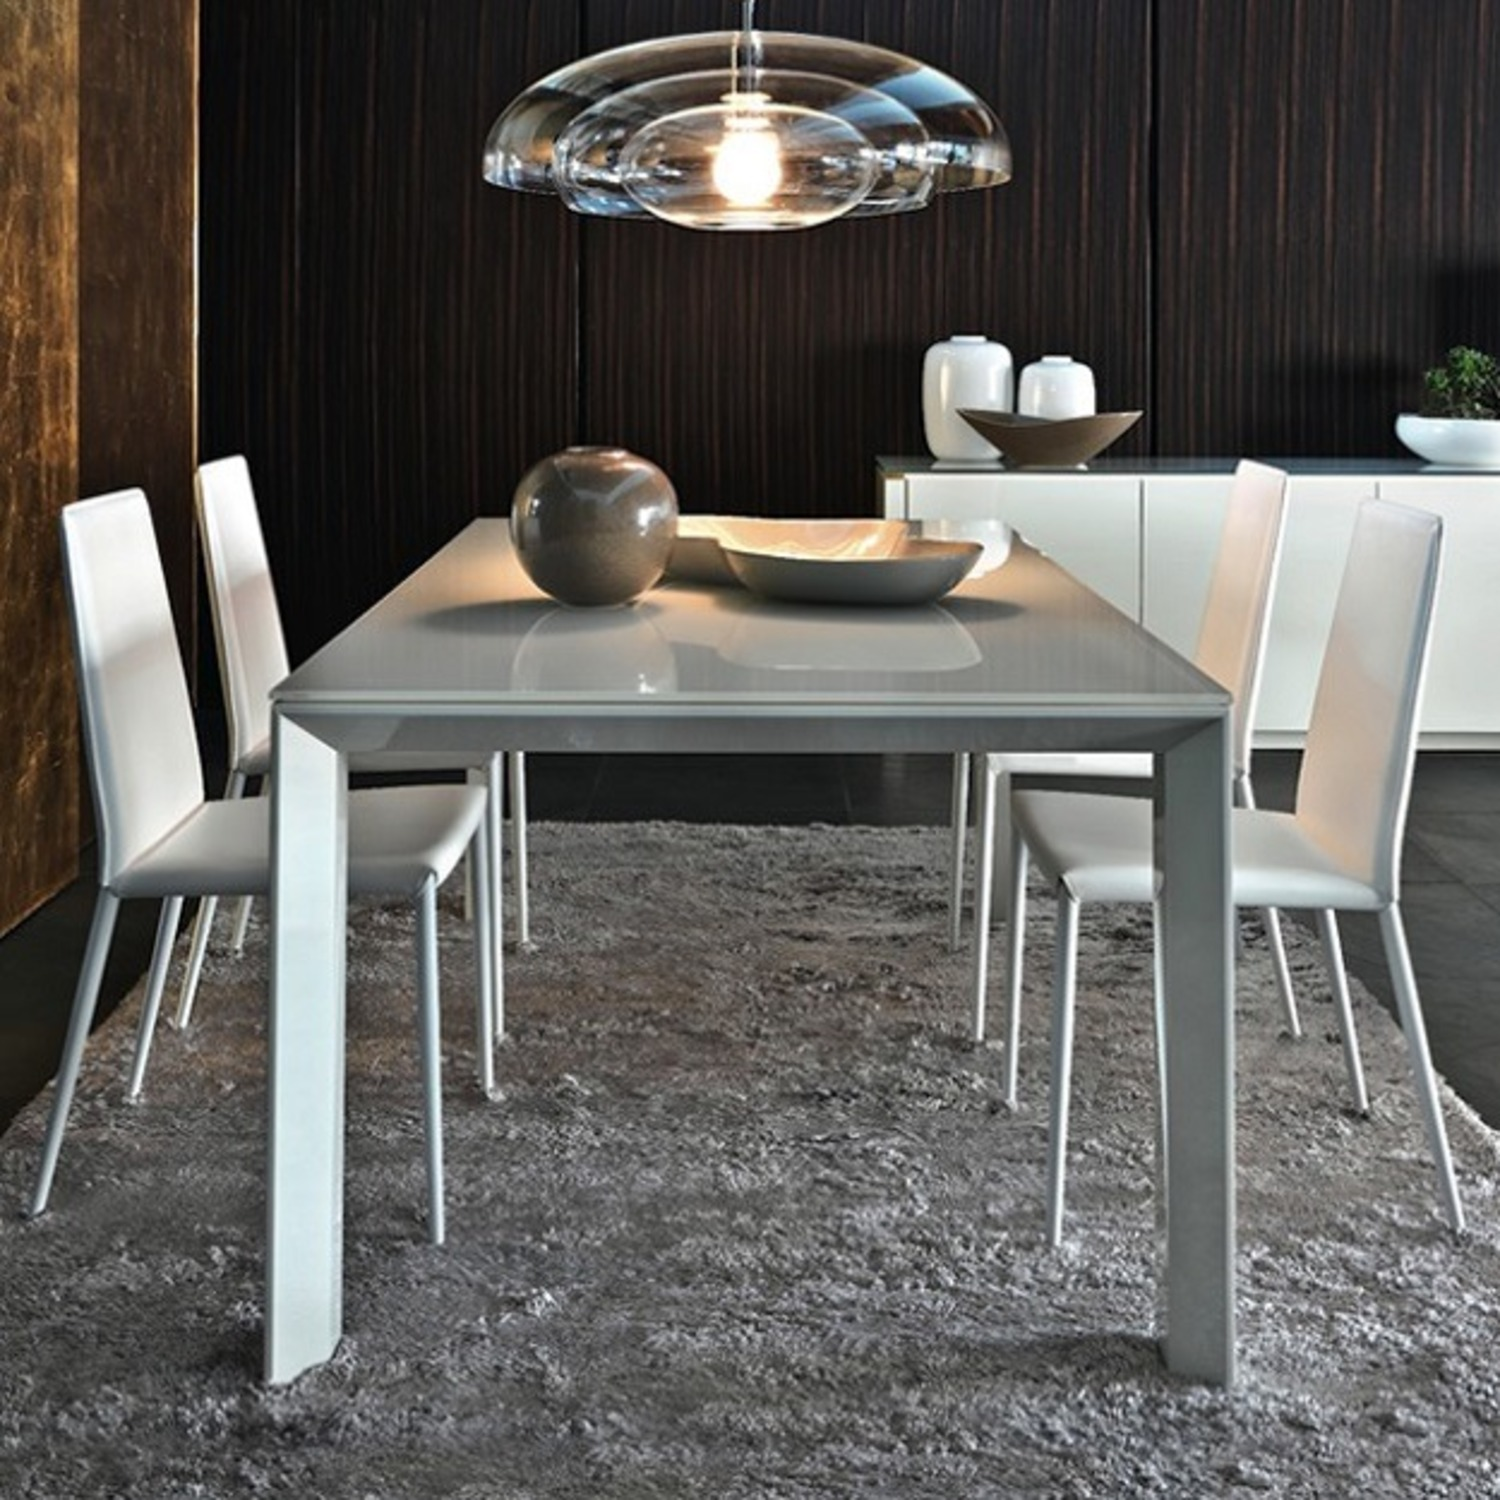 Calligaris Italian Custom Tempered Table - image-1